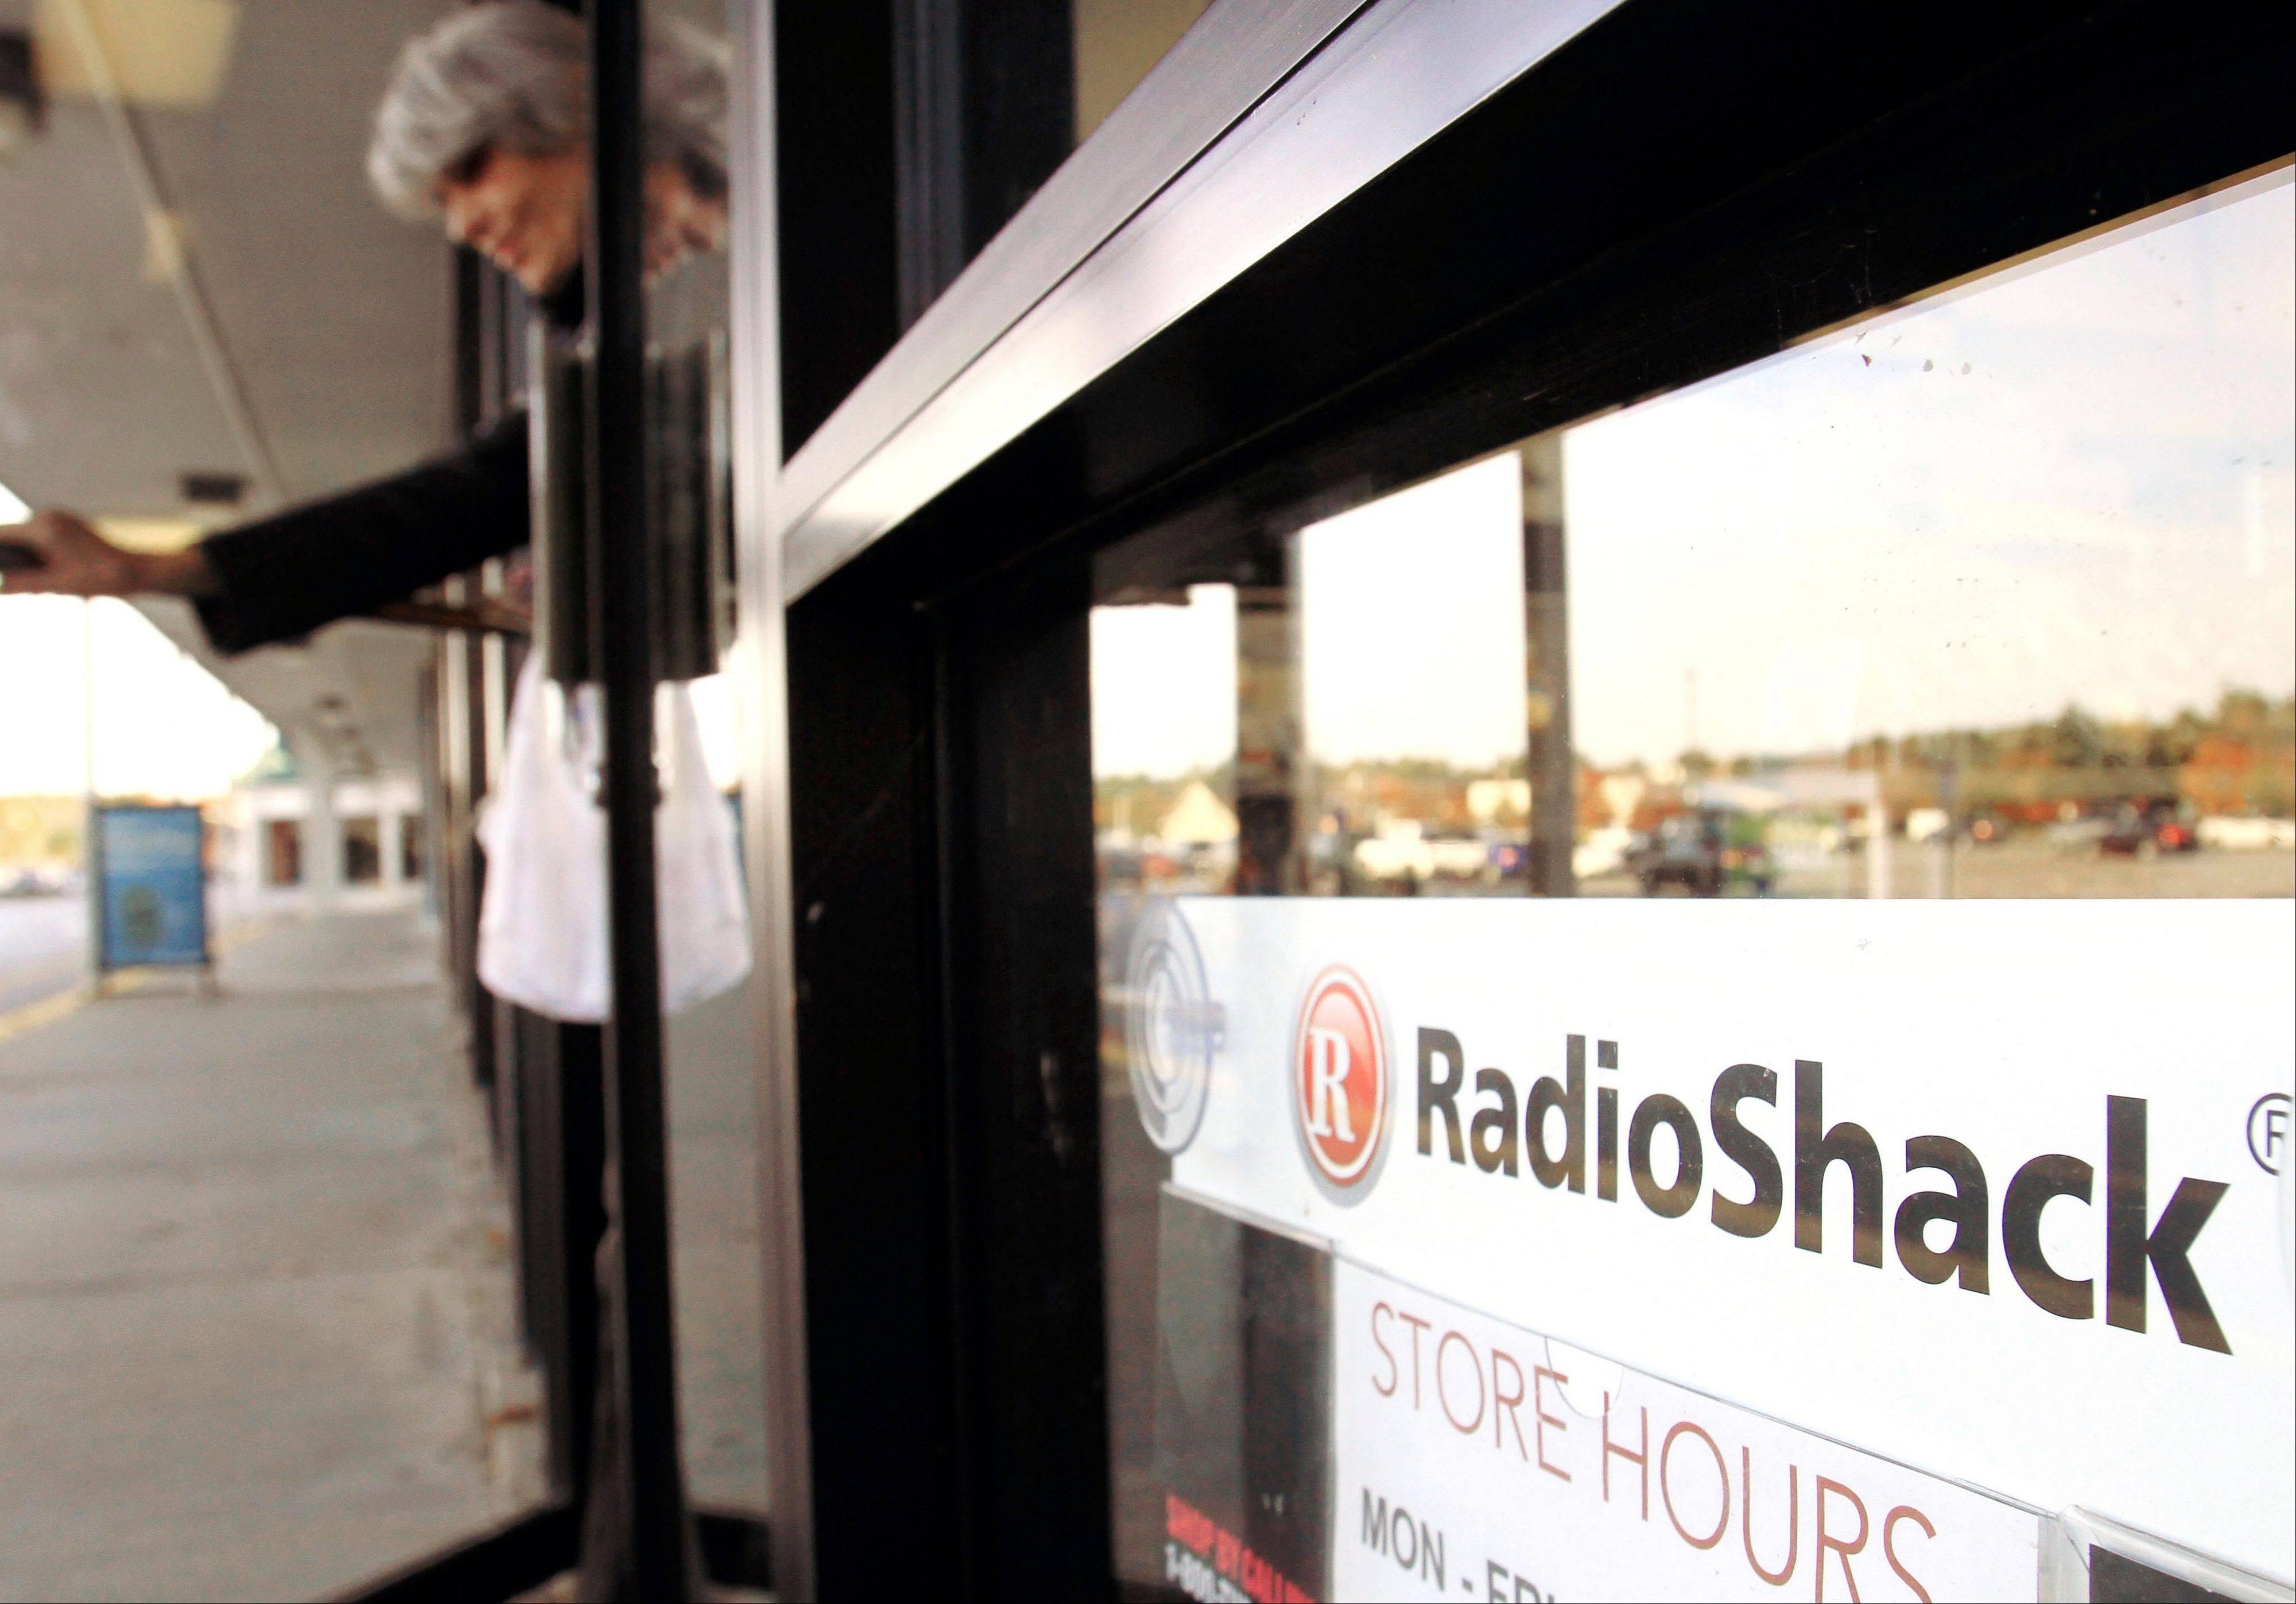 RadioShack said Tuesday that its second-quarter loss widened as the struggling electronics retailer works to revamp its stores and product assortment ahead of the crucial holiday season.